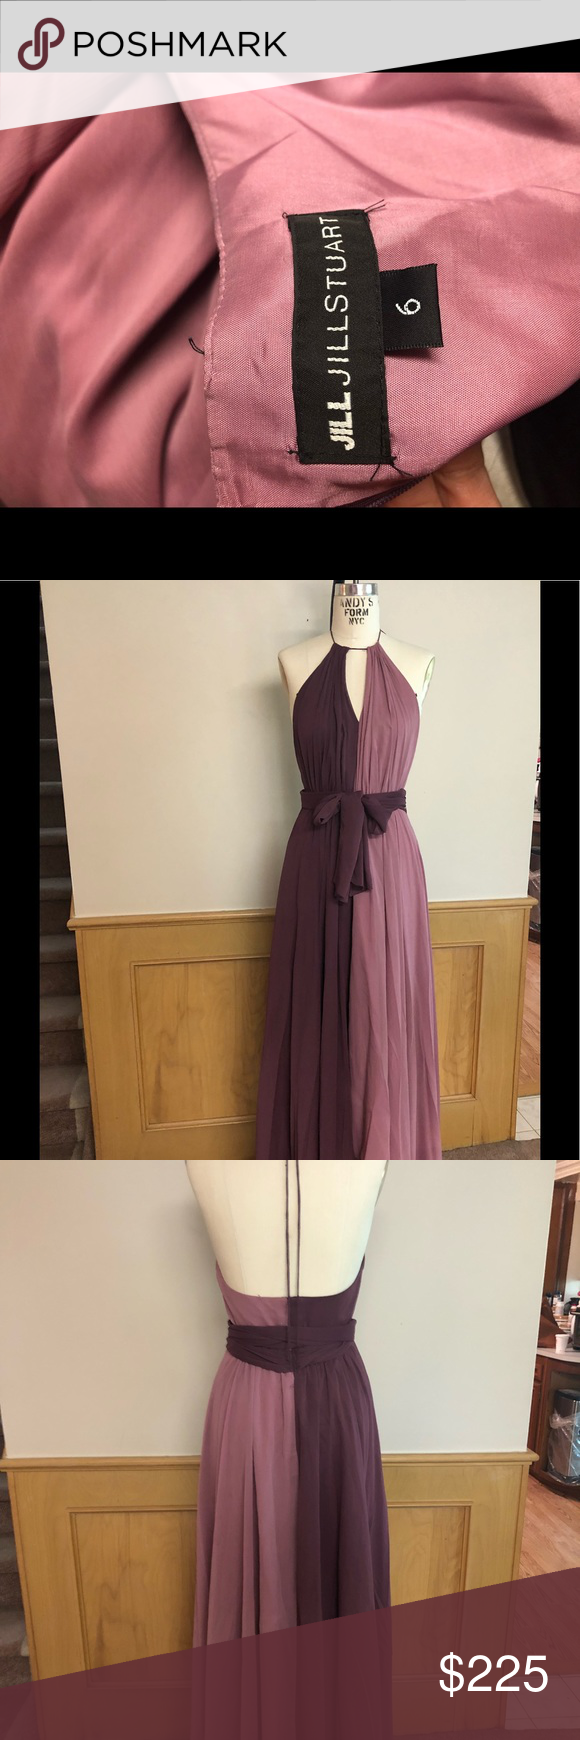 3da132627a Jill Jill Stuart color block gown Beautiful mauve and thistle color block  halter dress in size 6. Flattering with a waste tie and neckline keyhole.